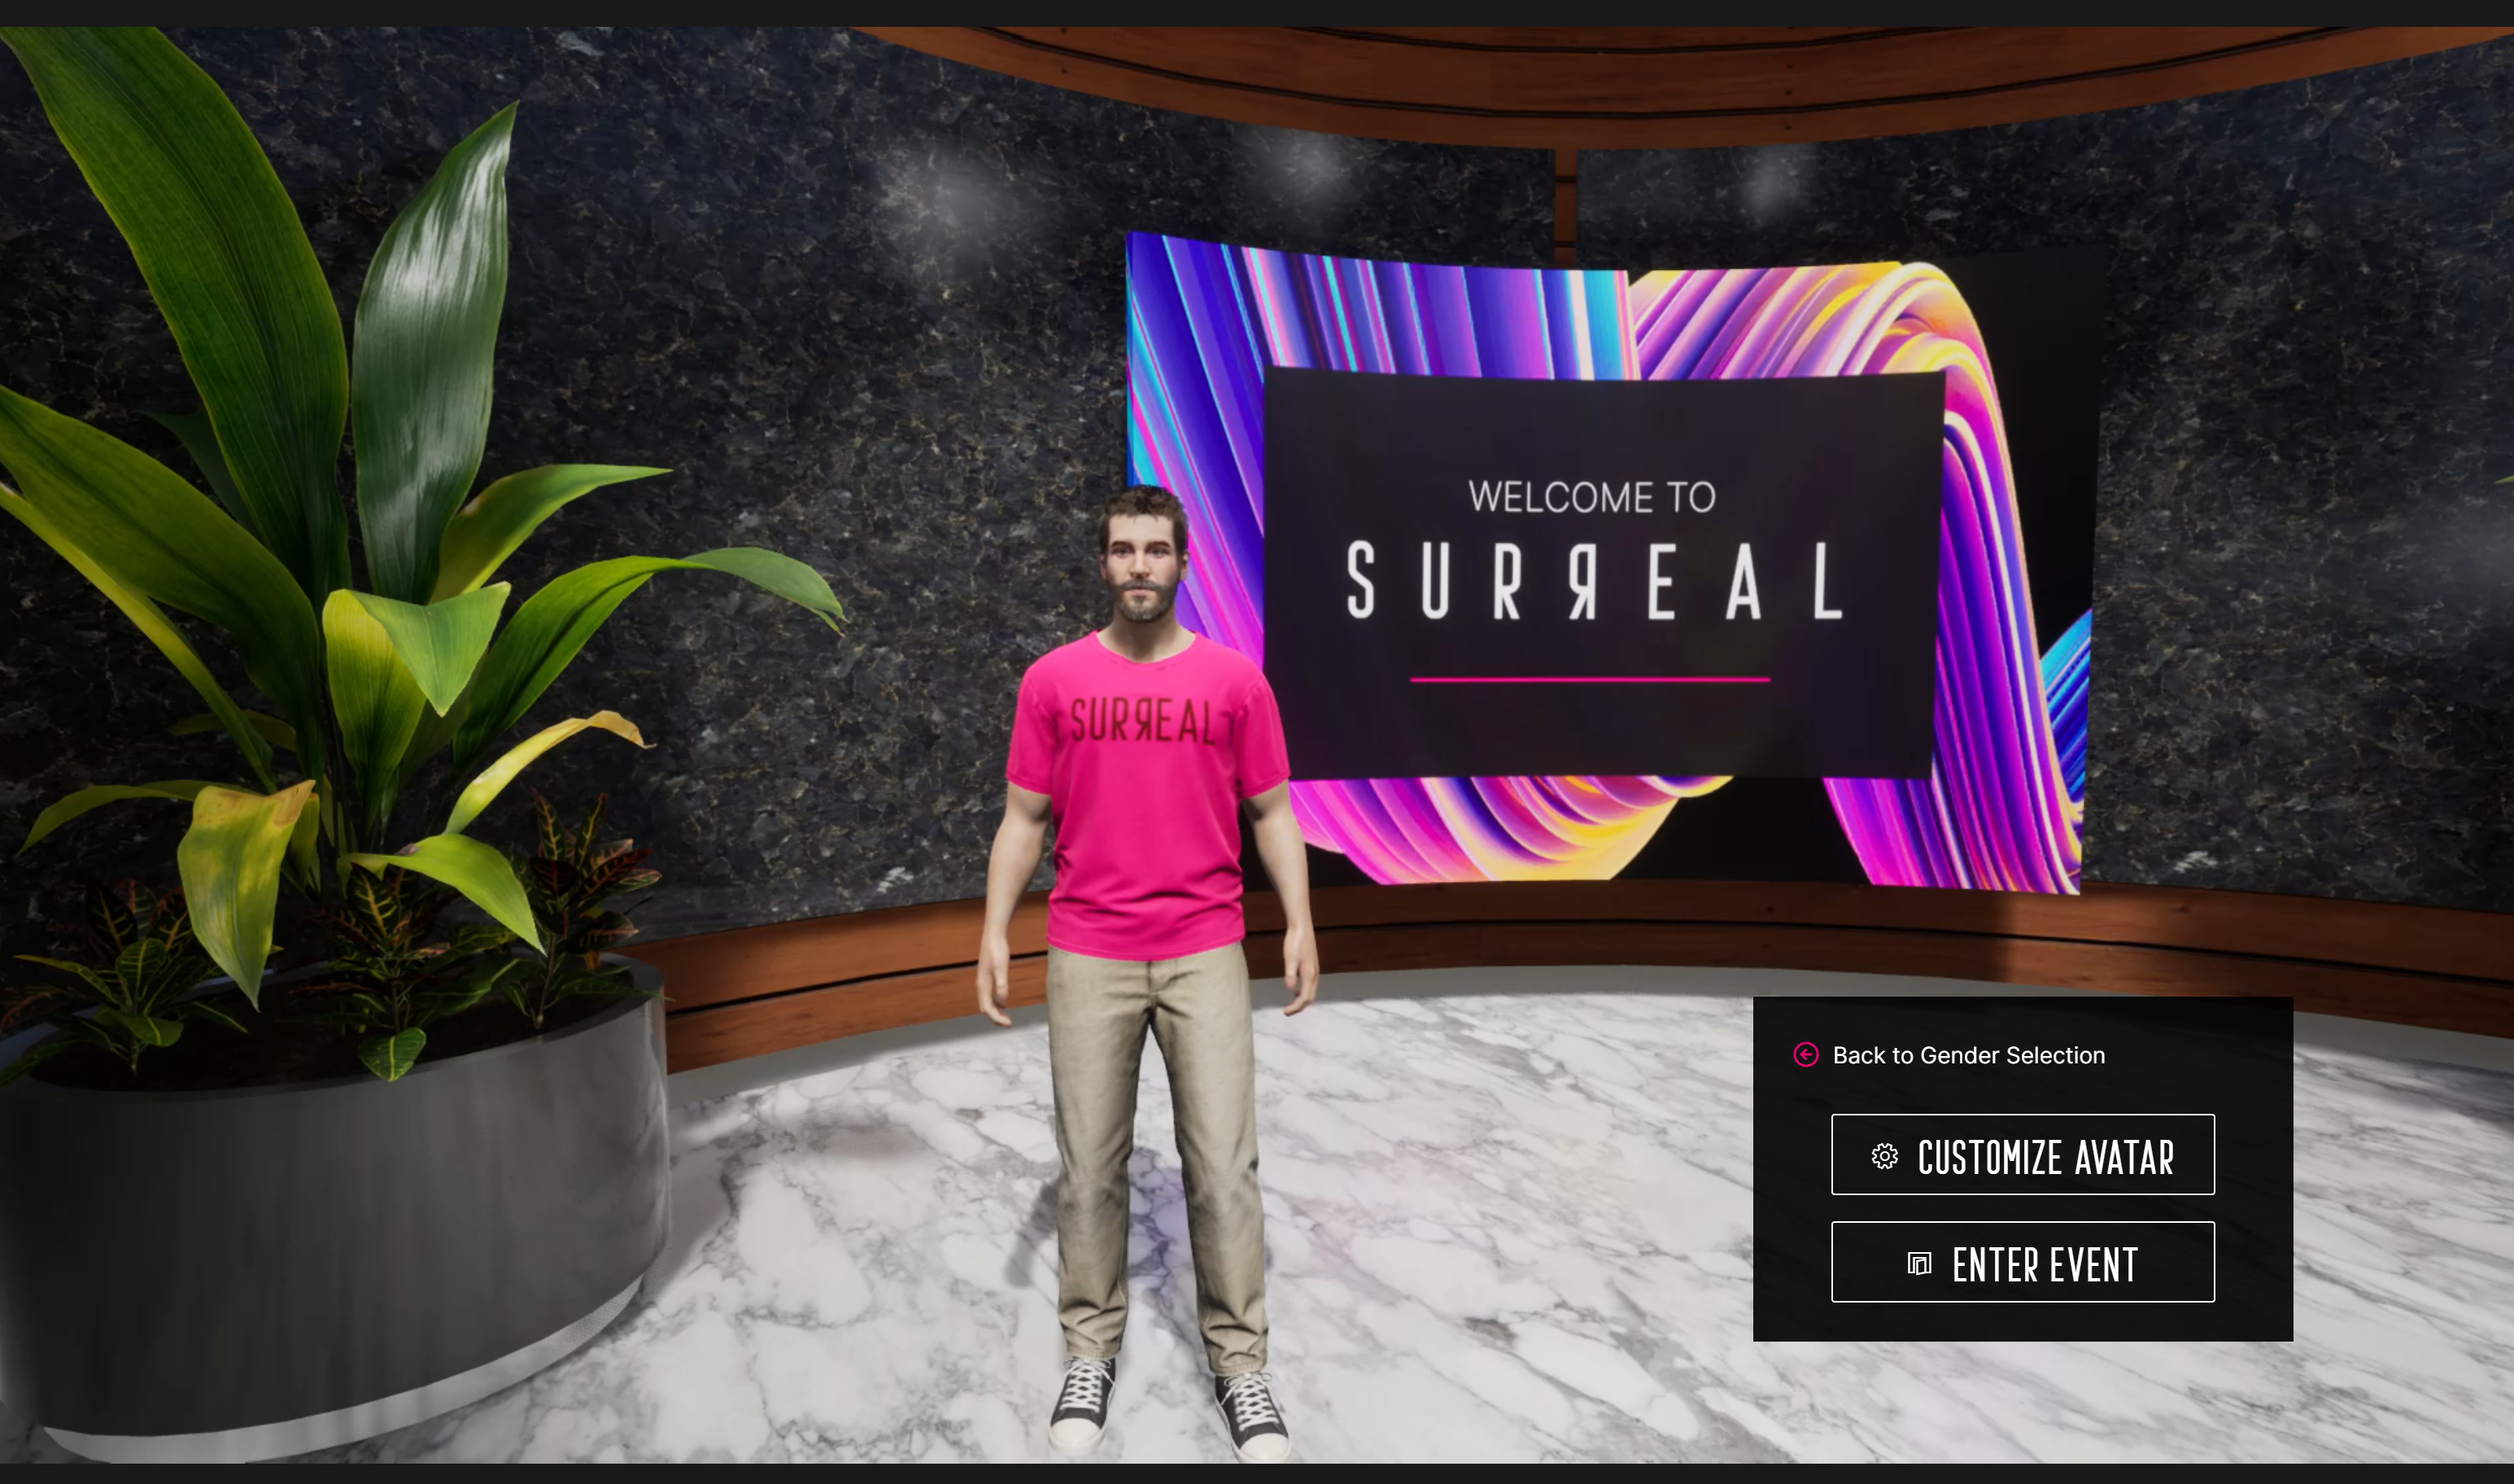 FEATURED AVATAR: NICK GRANT, CHIEF PRODUCT OFFICER / SURREAL